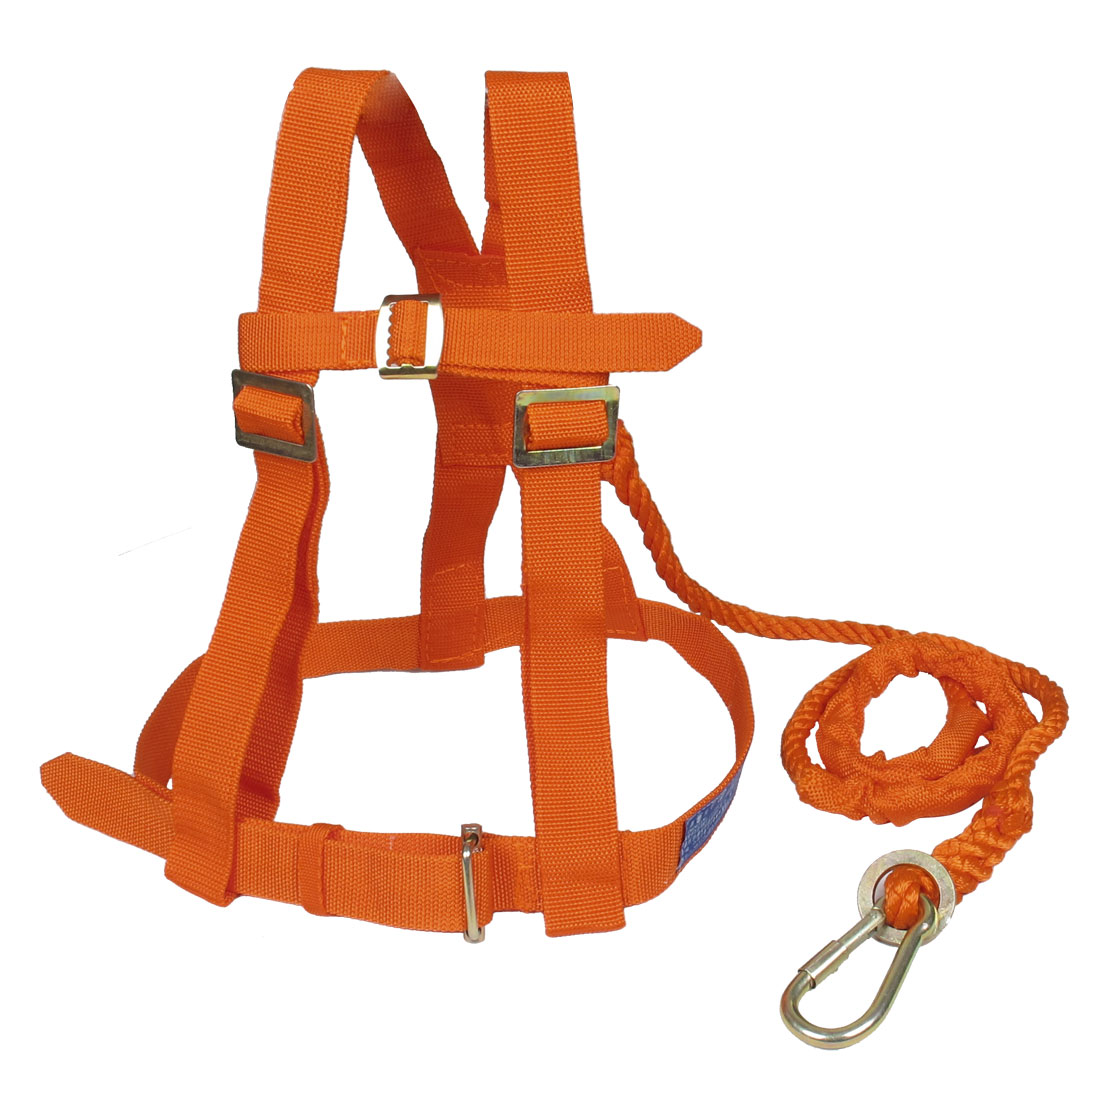 Climbing Nylon Cord Full Body Protection Safety Adjustable Harness Orange w Hook